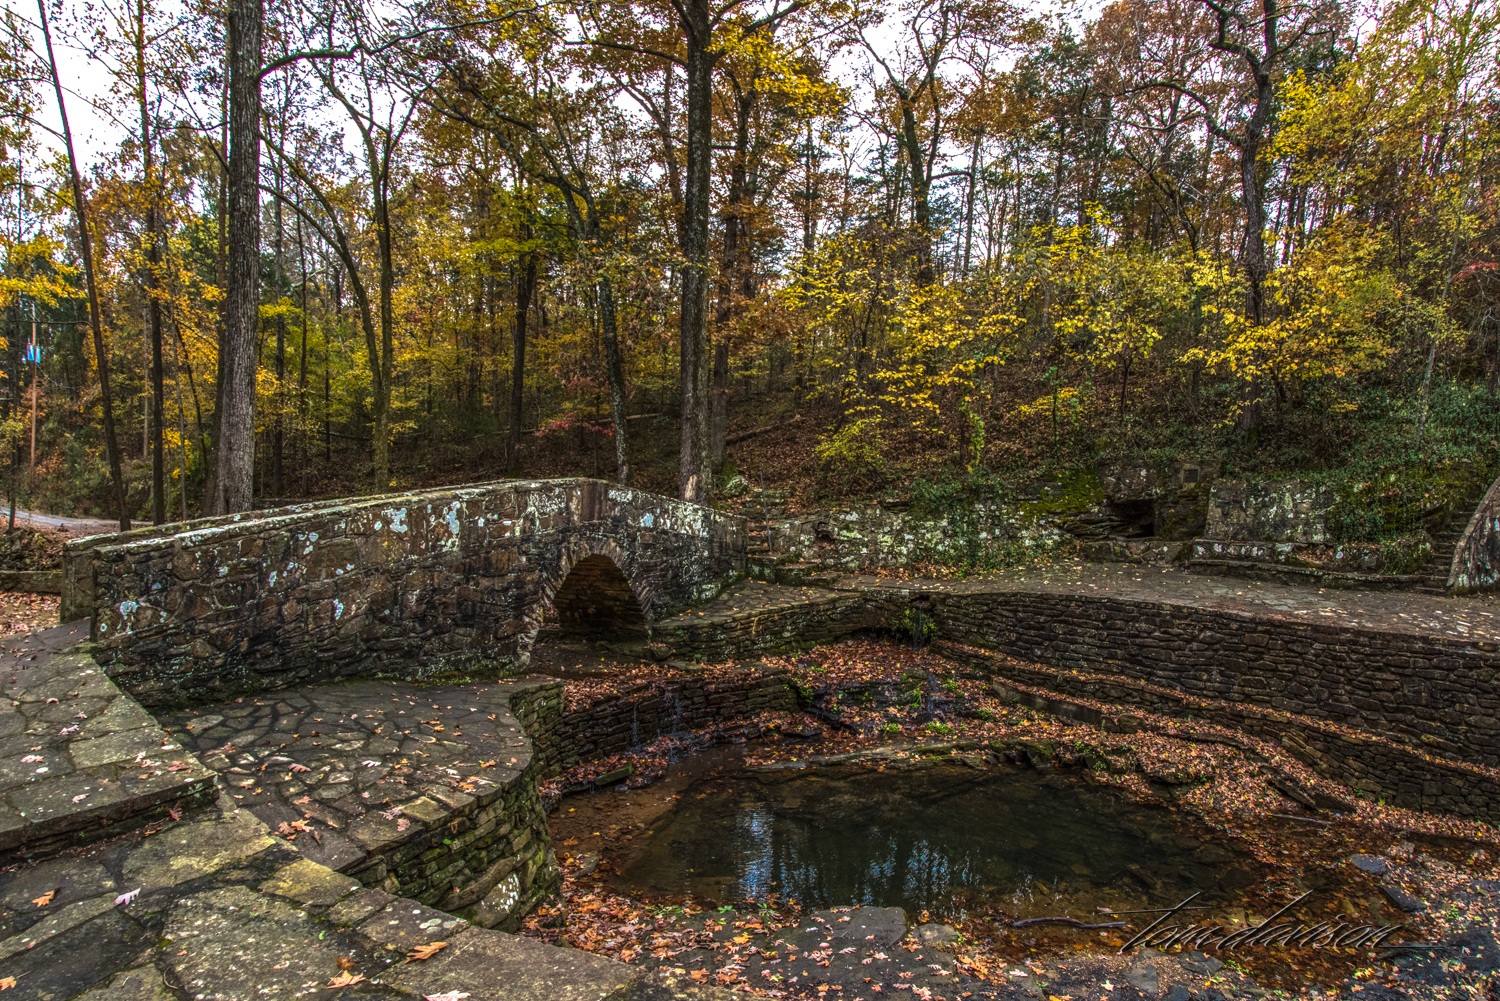 Several hiking paths begin across the bridge over the creek. One will take a hiker all the way to the Ozark Folk Center.